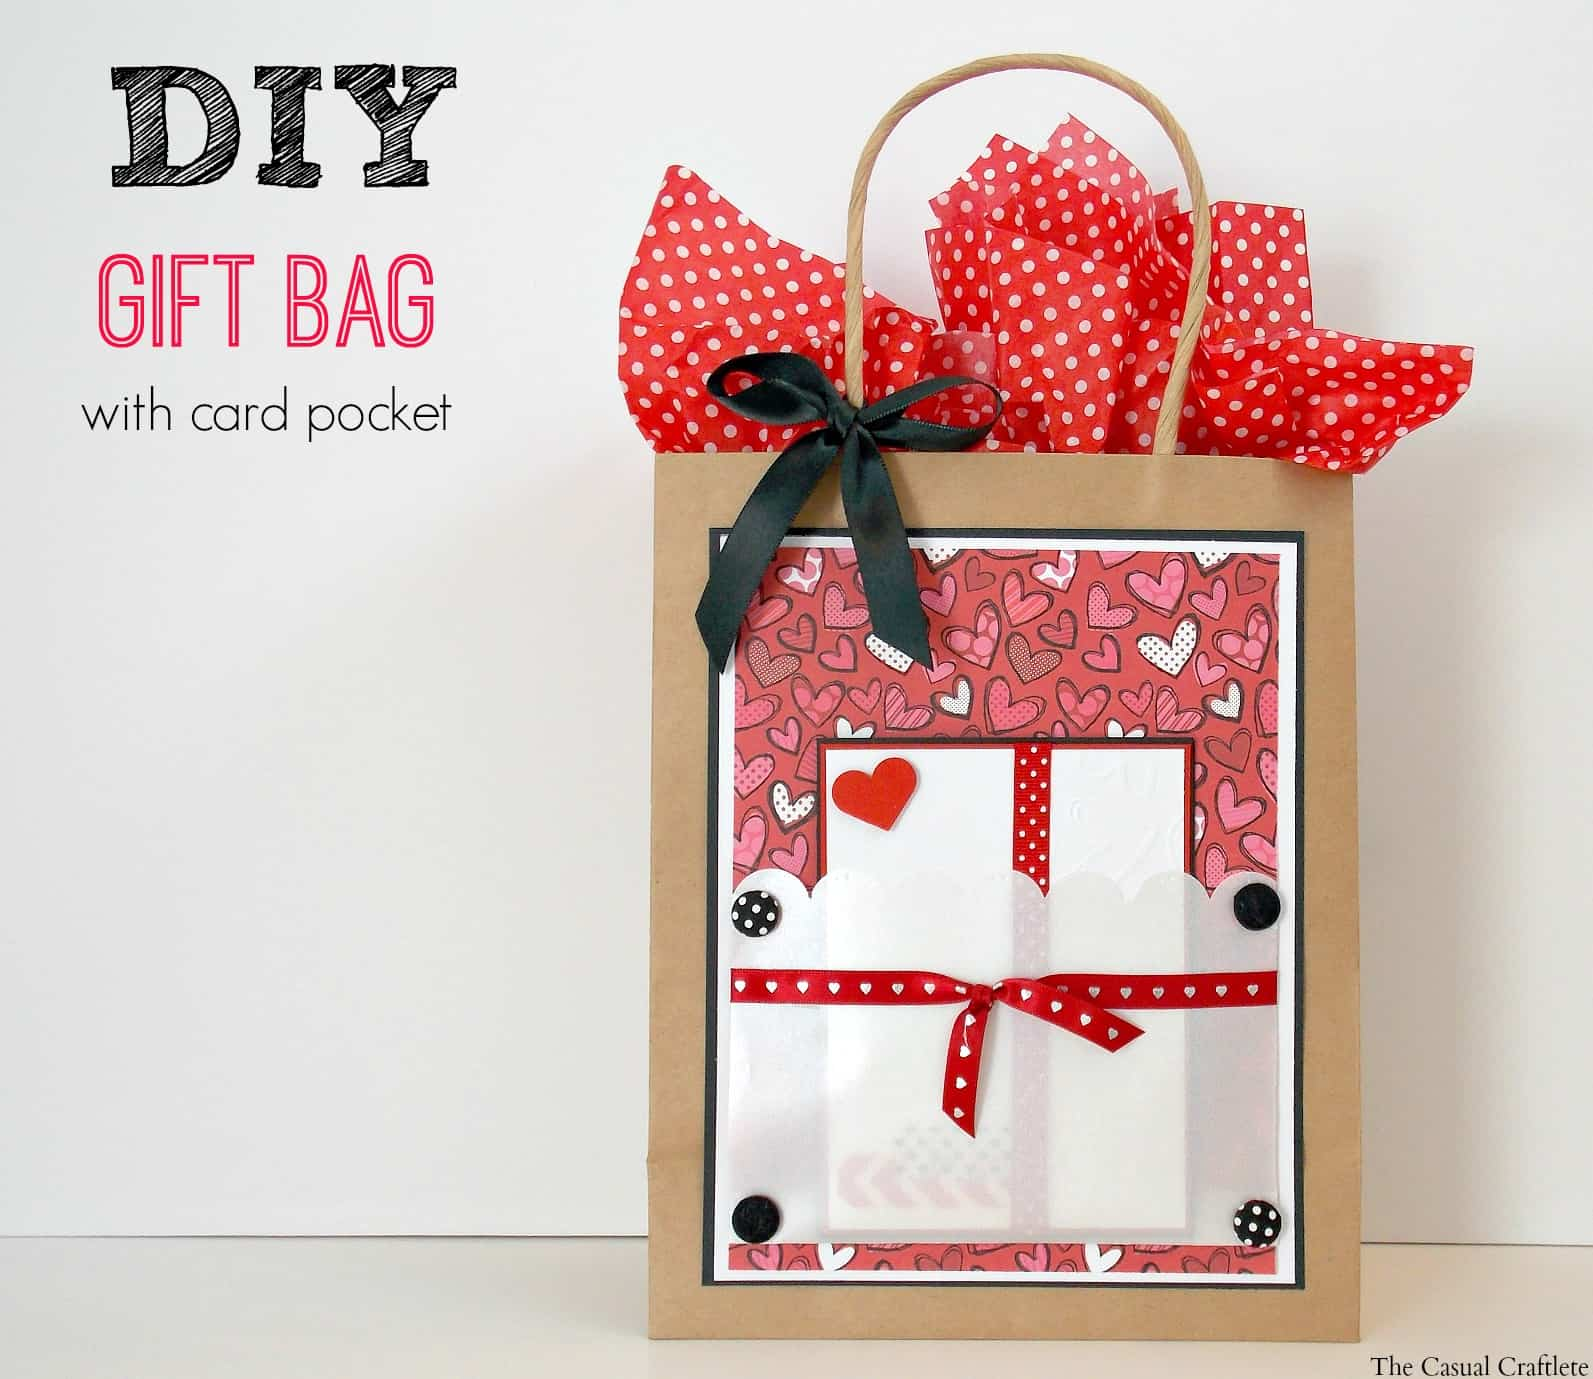 Diy gift bag with card pocket plus free printable